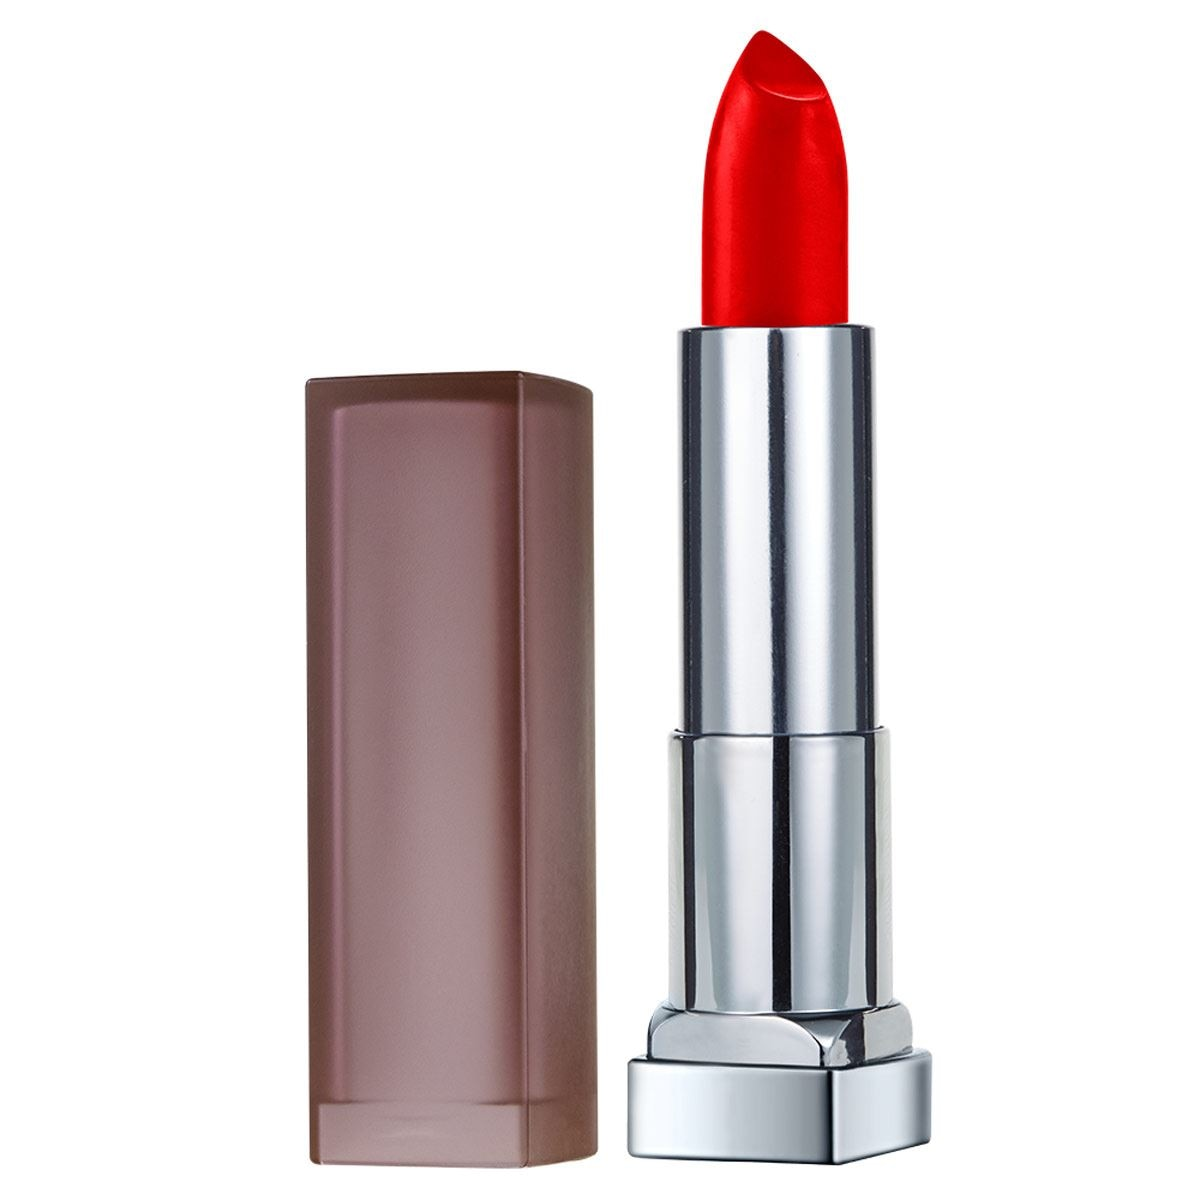 Labial Matte Color Sensational Maybelline 690 Siren Scarlet